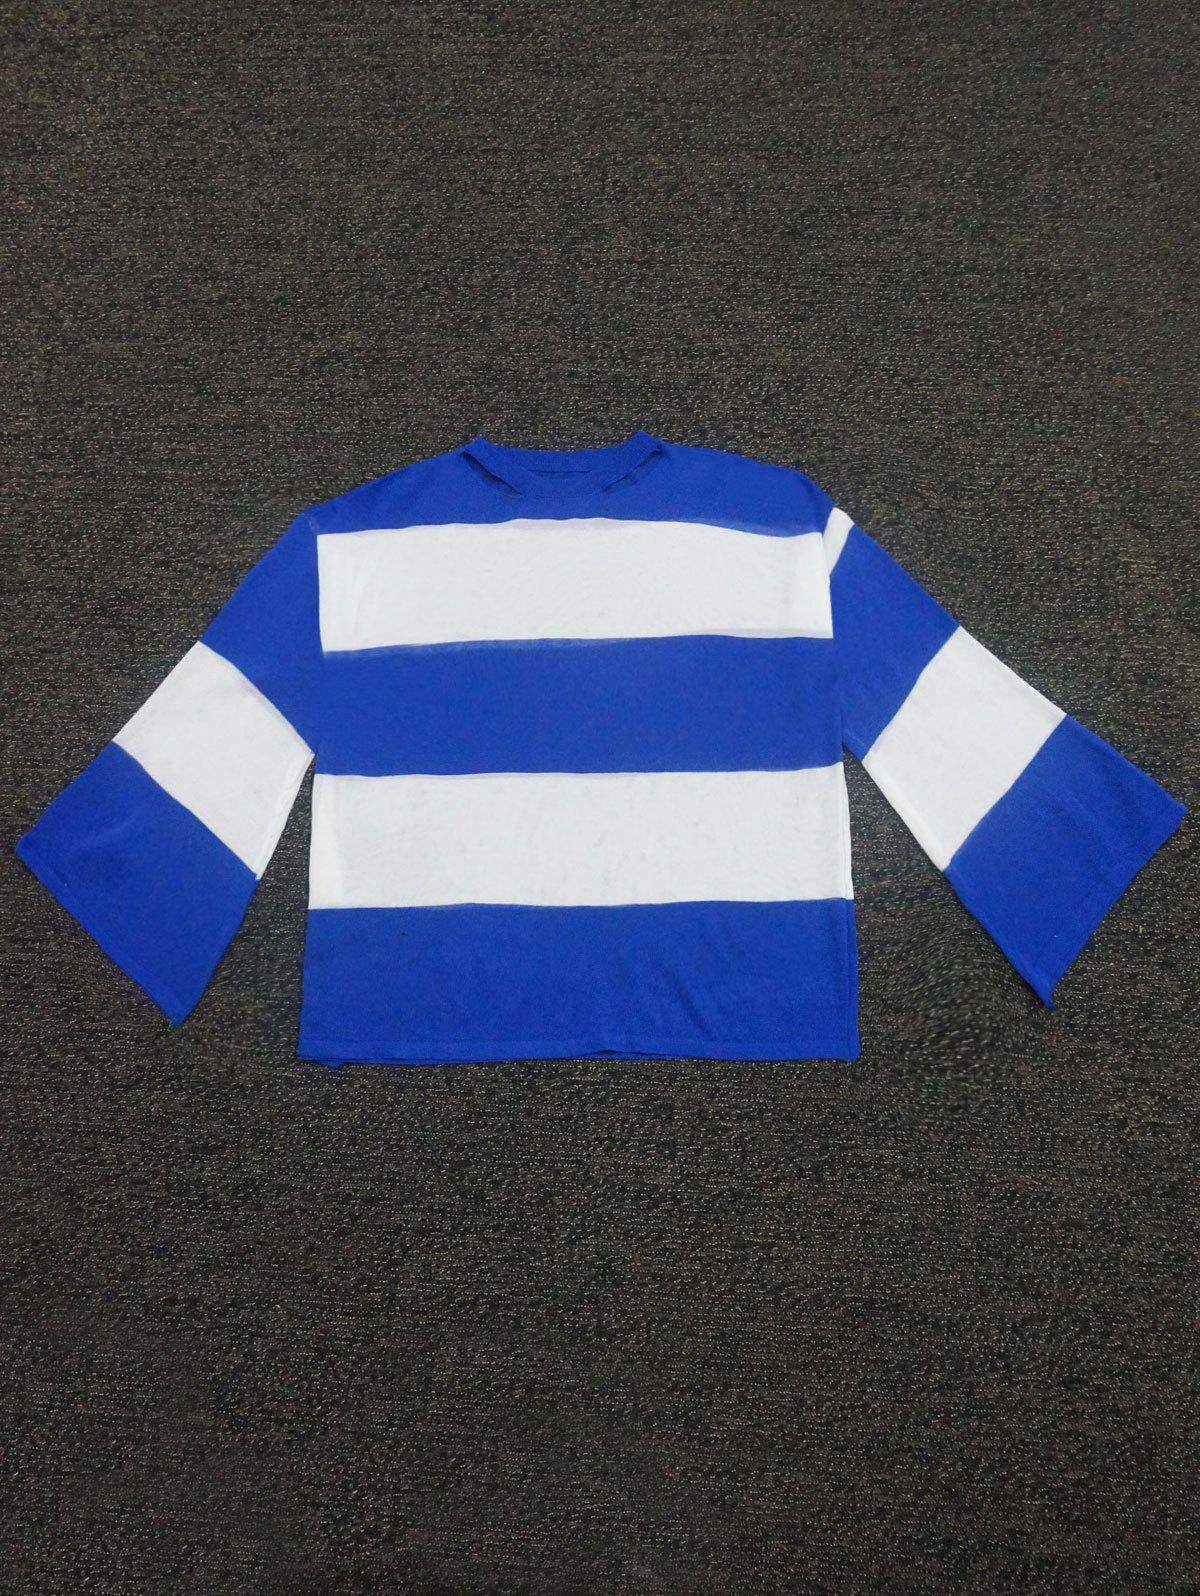 Thick Striped Color Block Cut Out Sweater 12 18 36 48colors students prize creative gifts lead free avoid cut wood thick core color pen water soluble colored pincel art